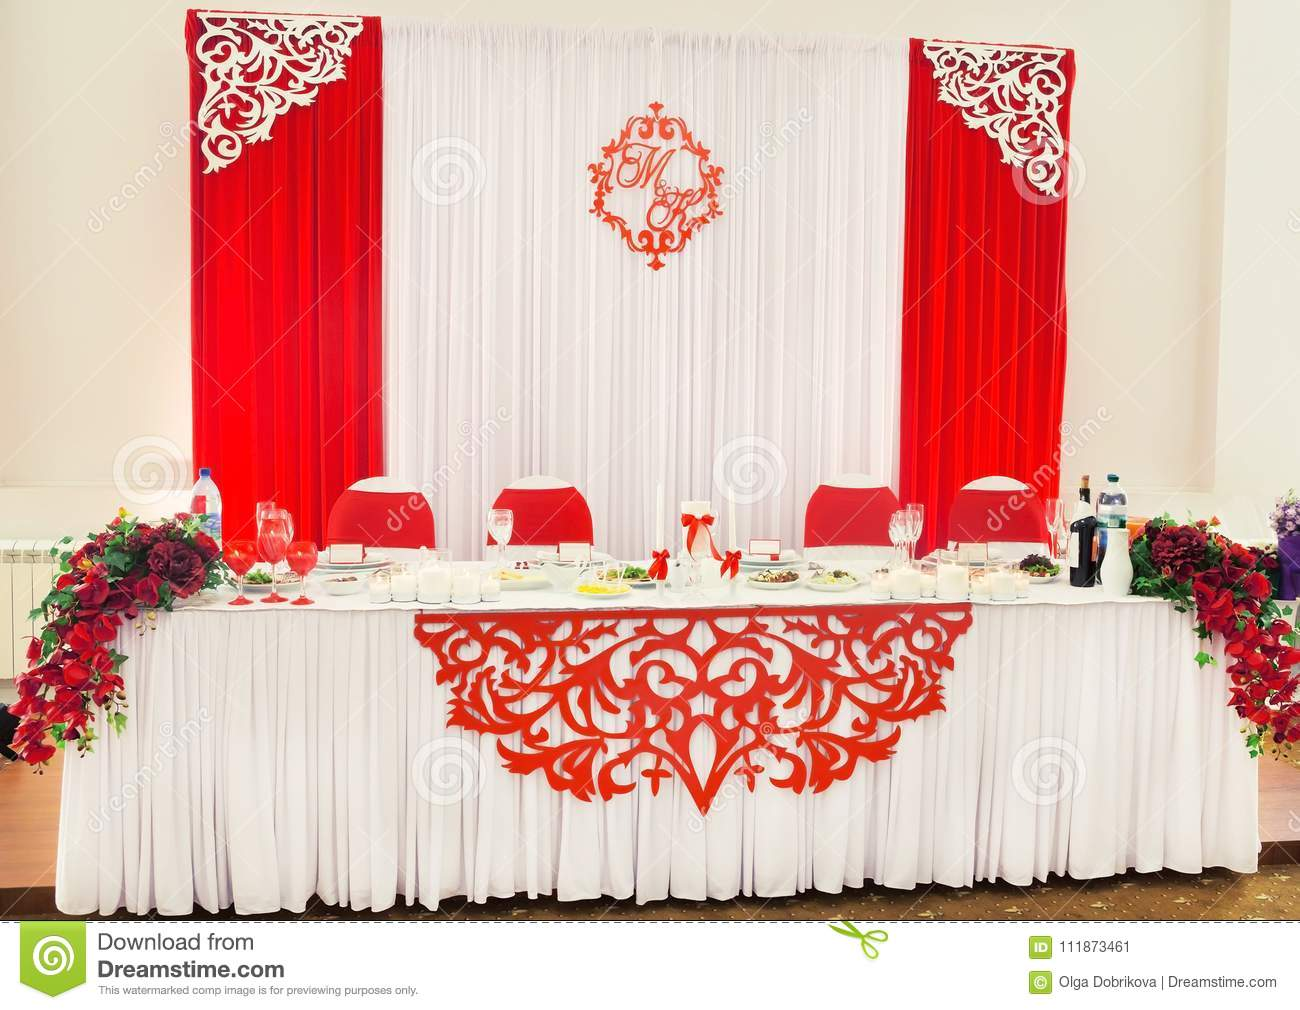 Wedding Decorations Of White And Red Color On Table For